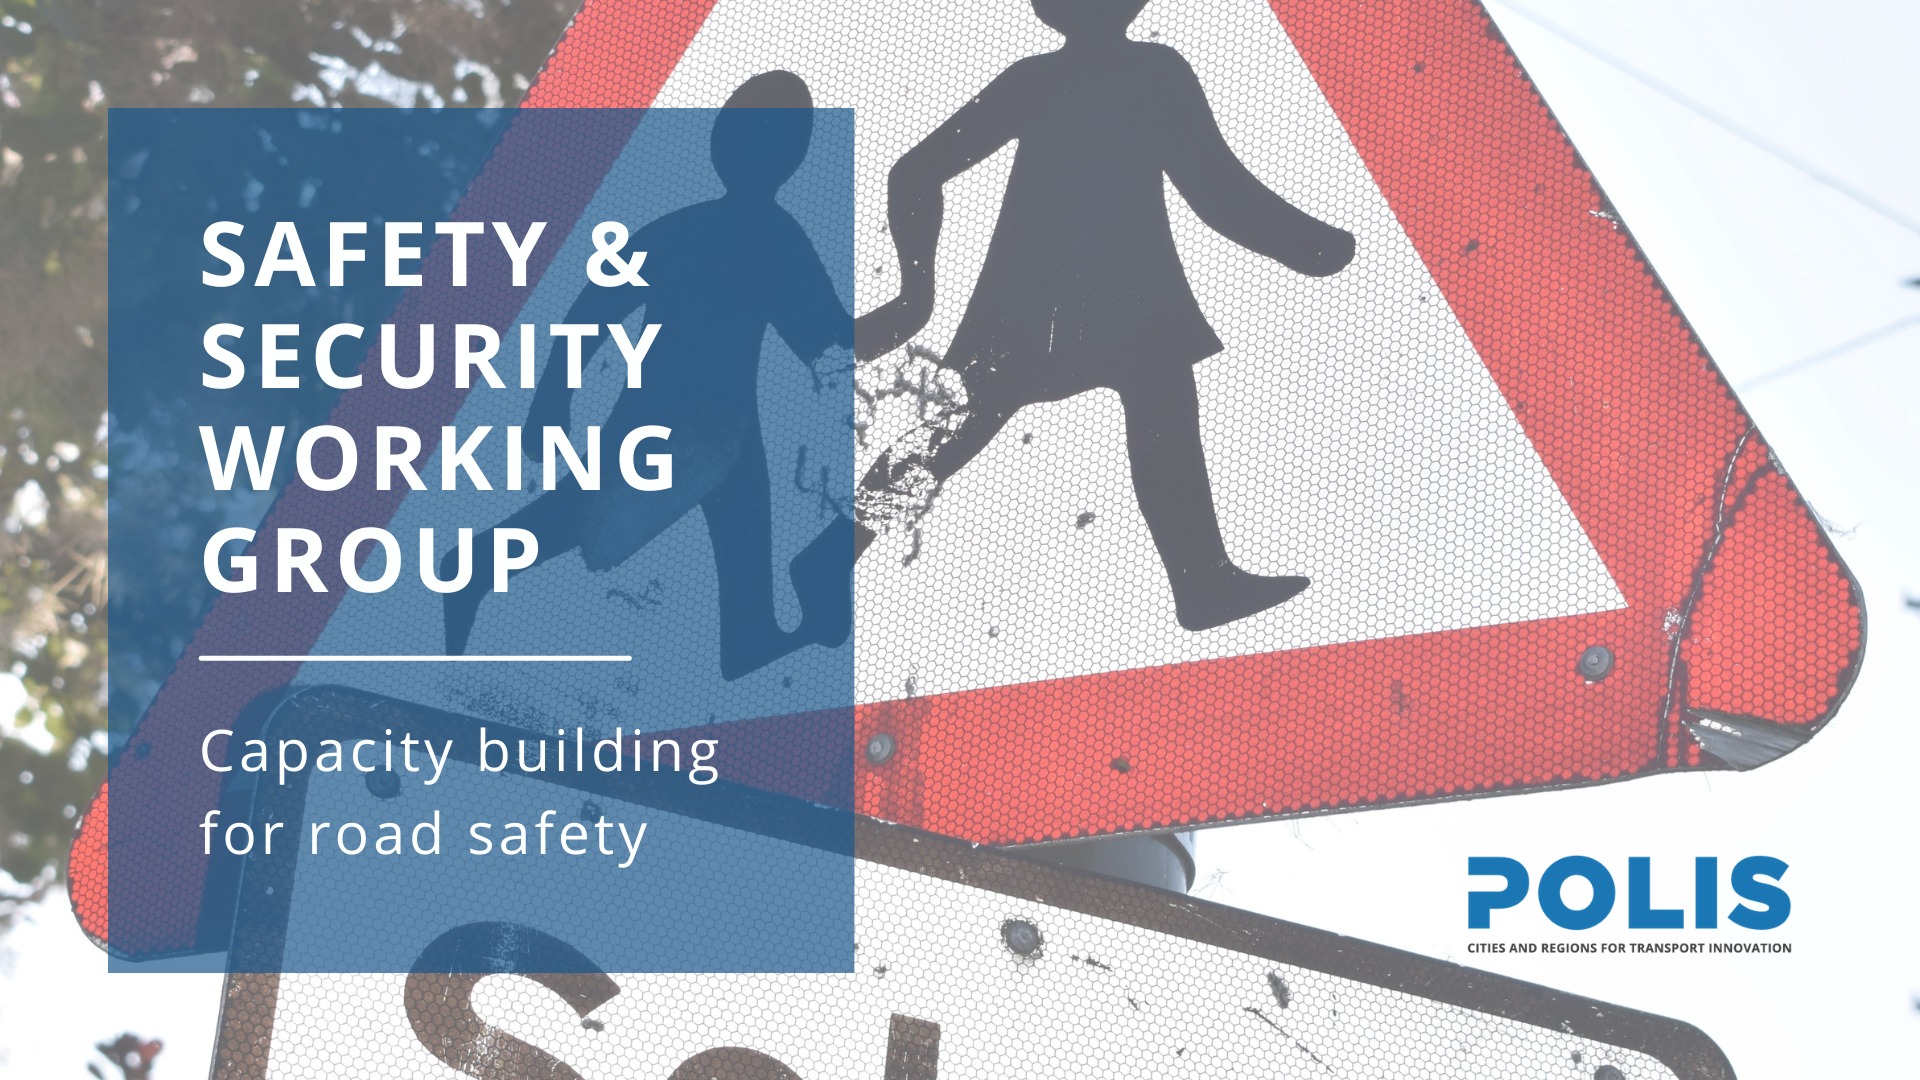 Safety & Security Working Group meets to discuss capacity building for road safety